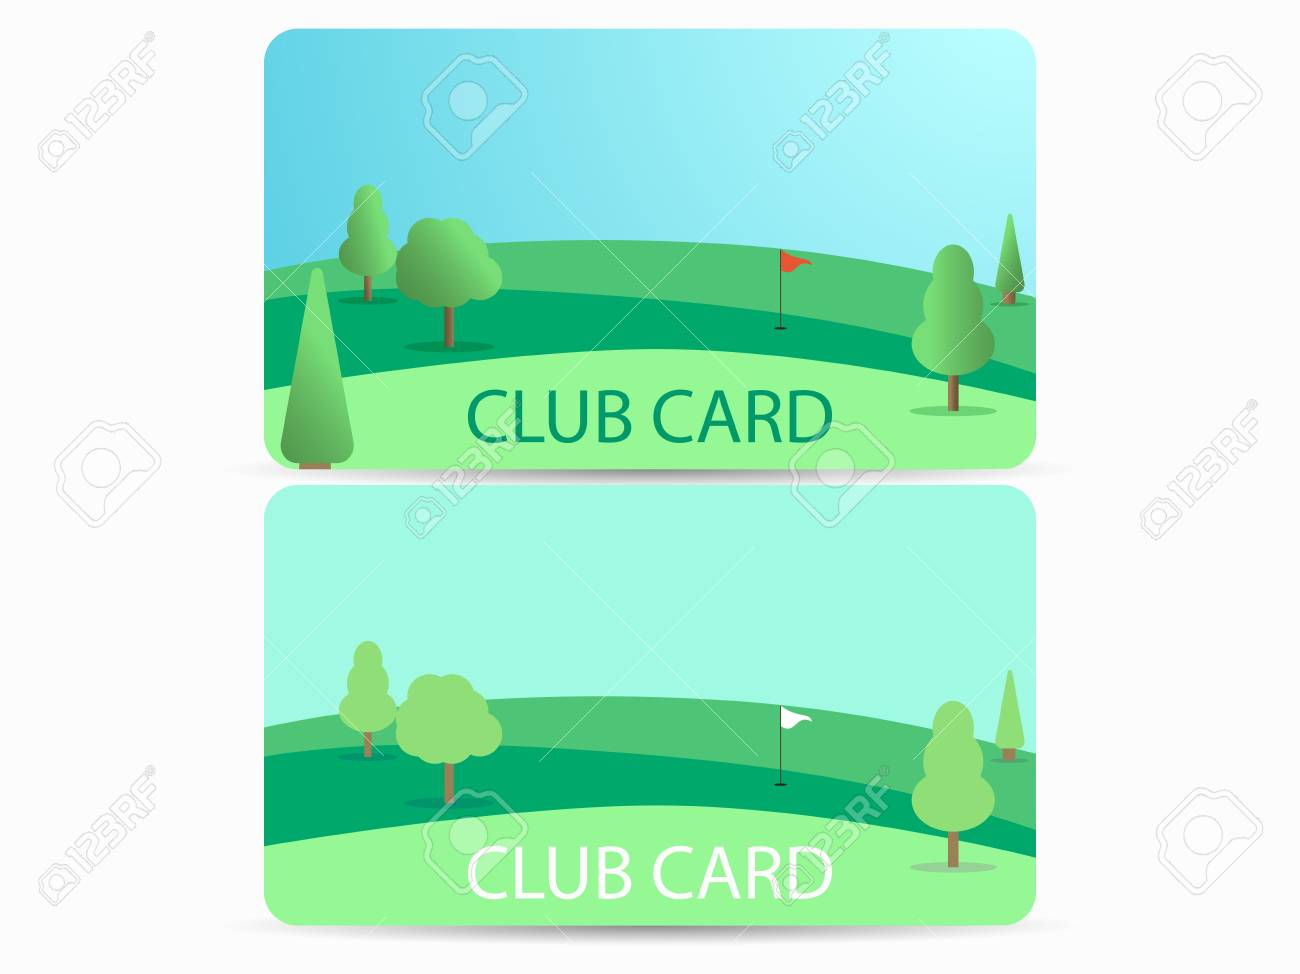 hight resolution of club card with a golf course membership in a golf club field with a